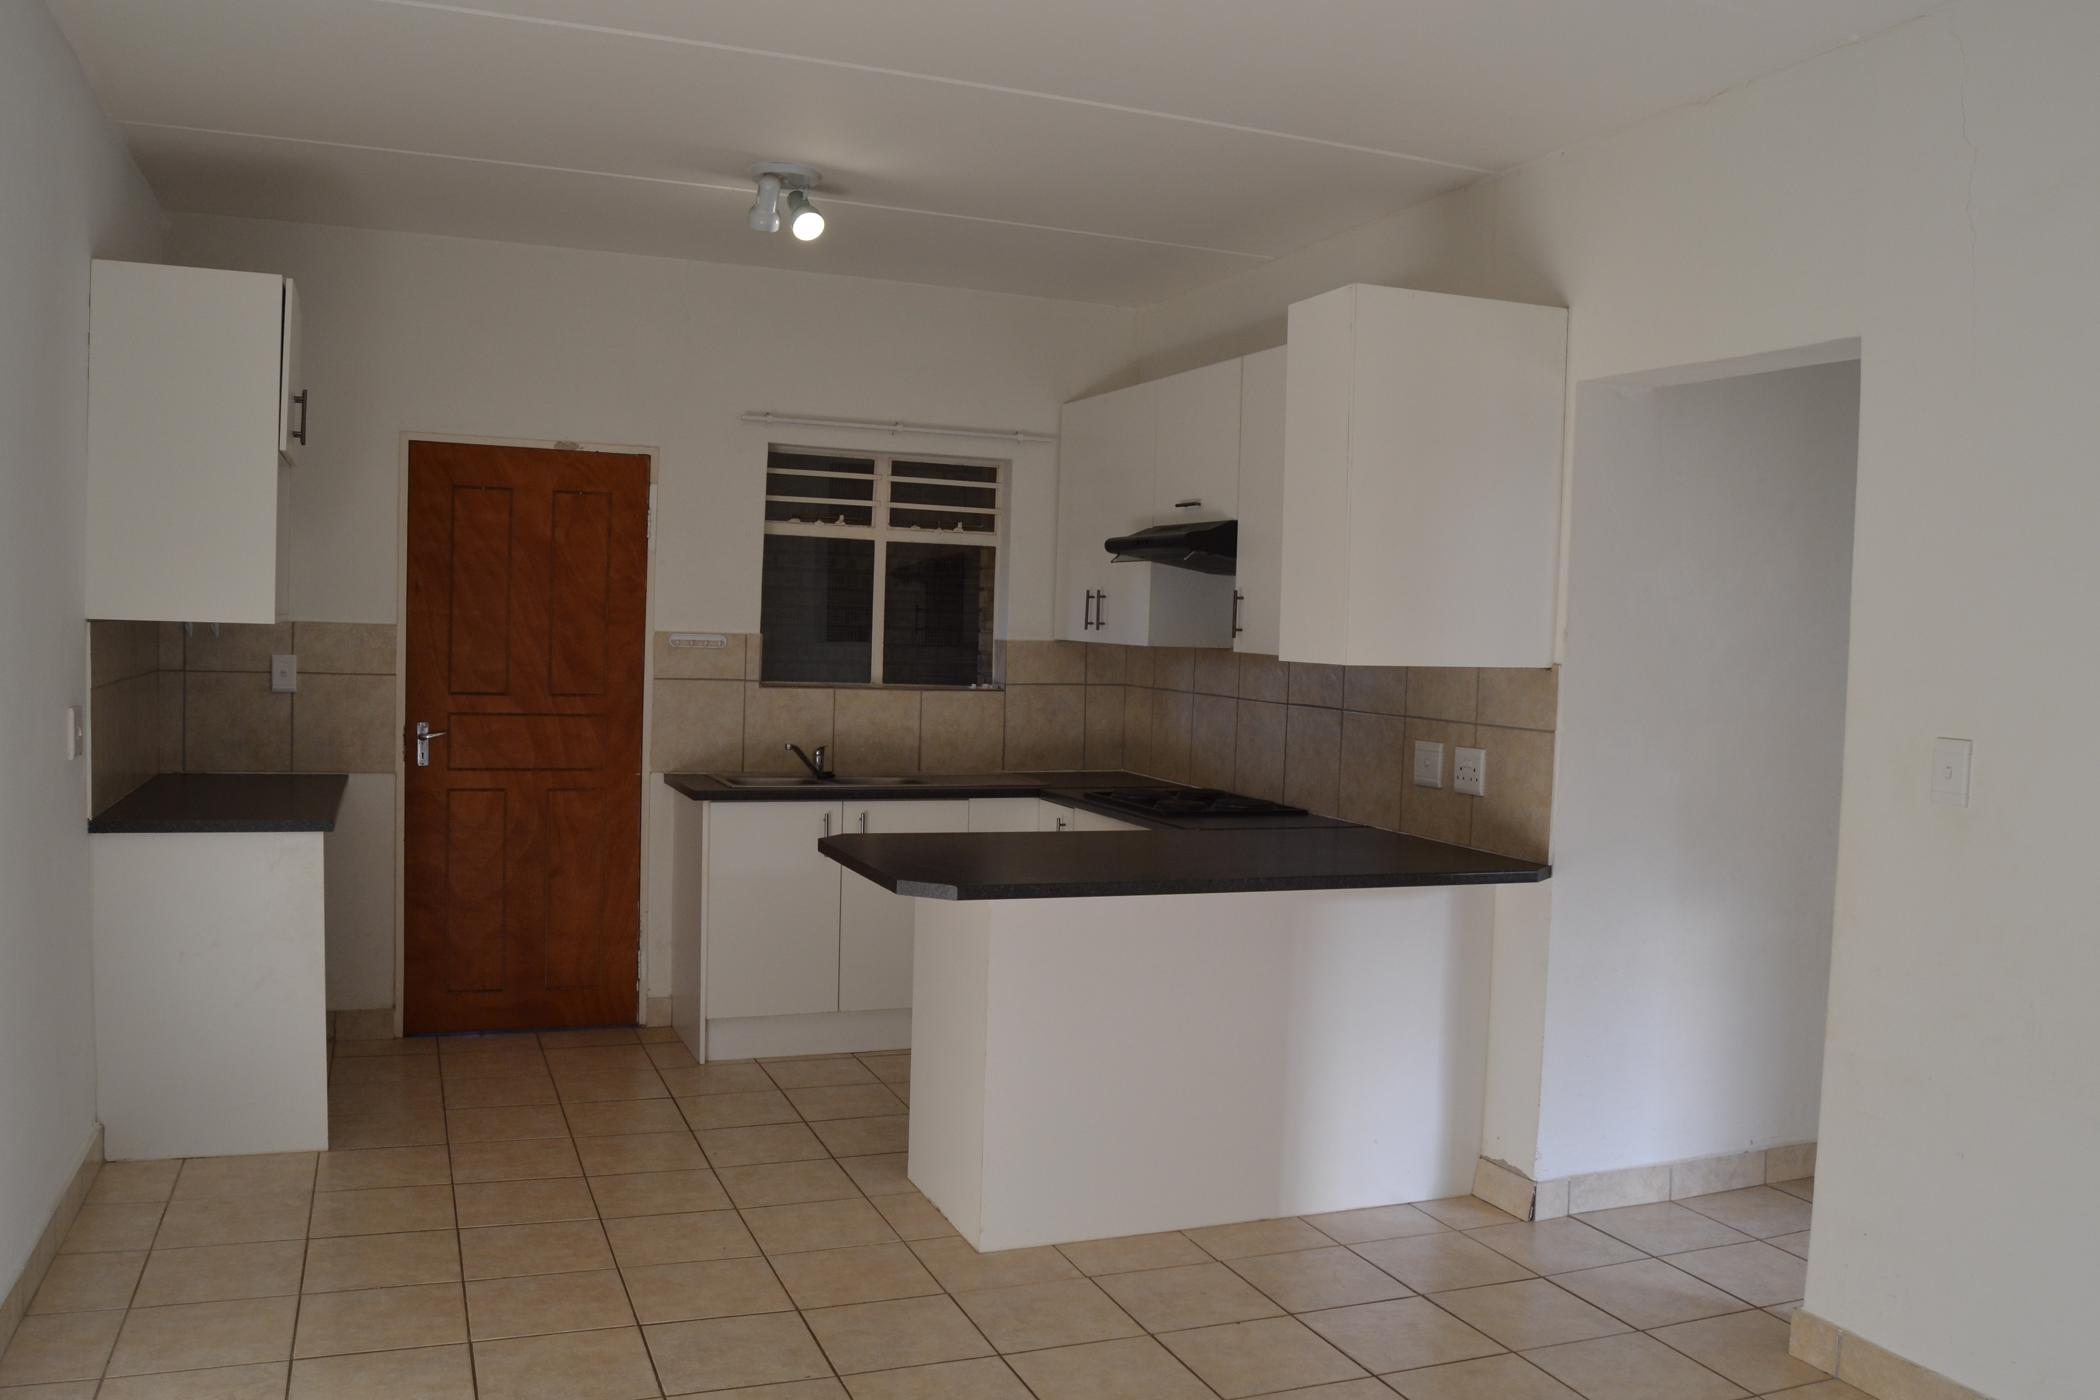 https://listing.pamgolding.co.za/images/properties/201908/622907/H/622907_H_19.jpg